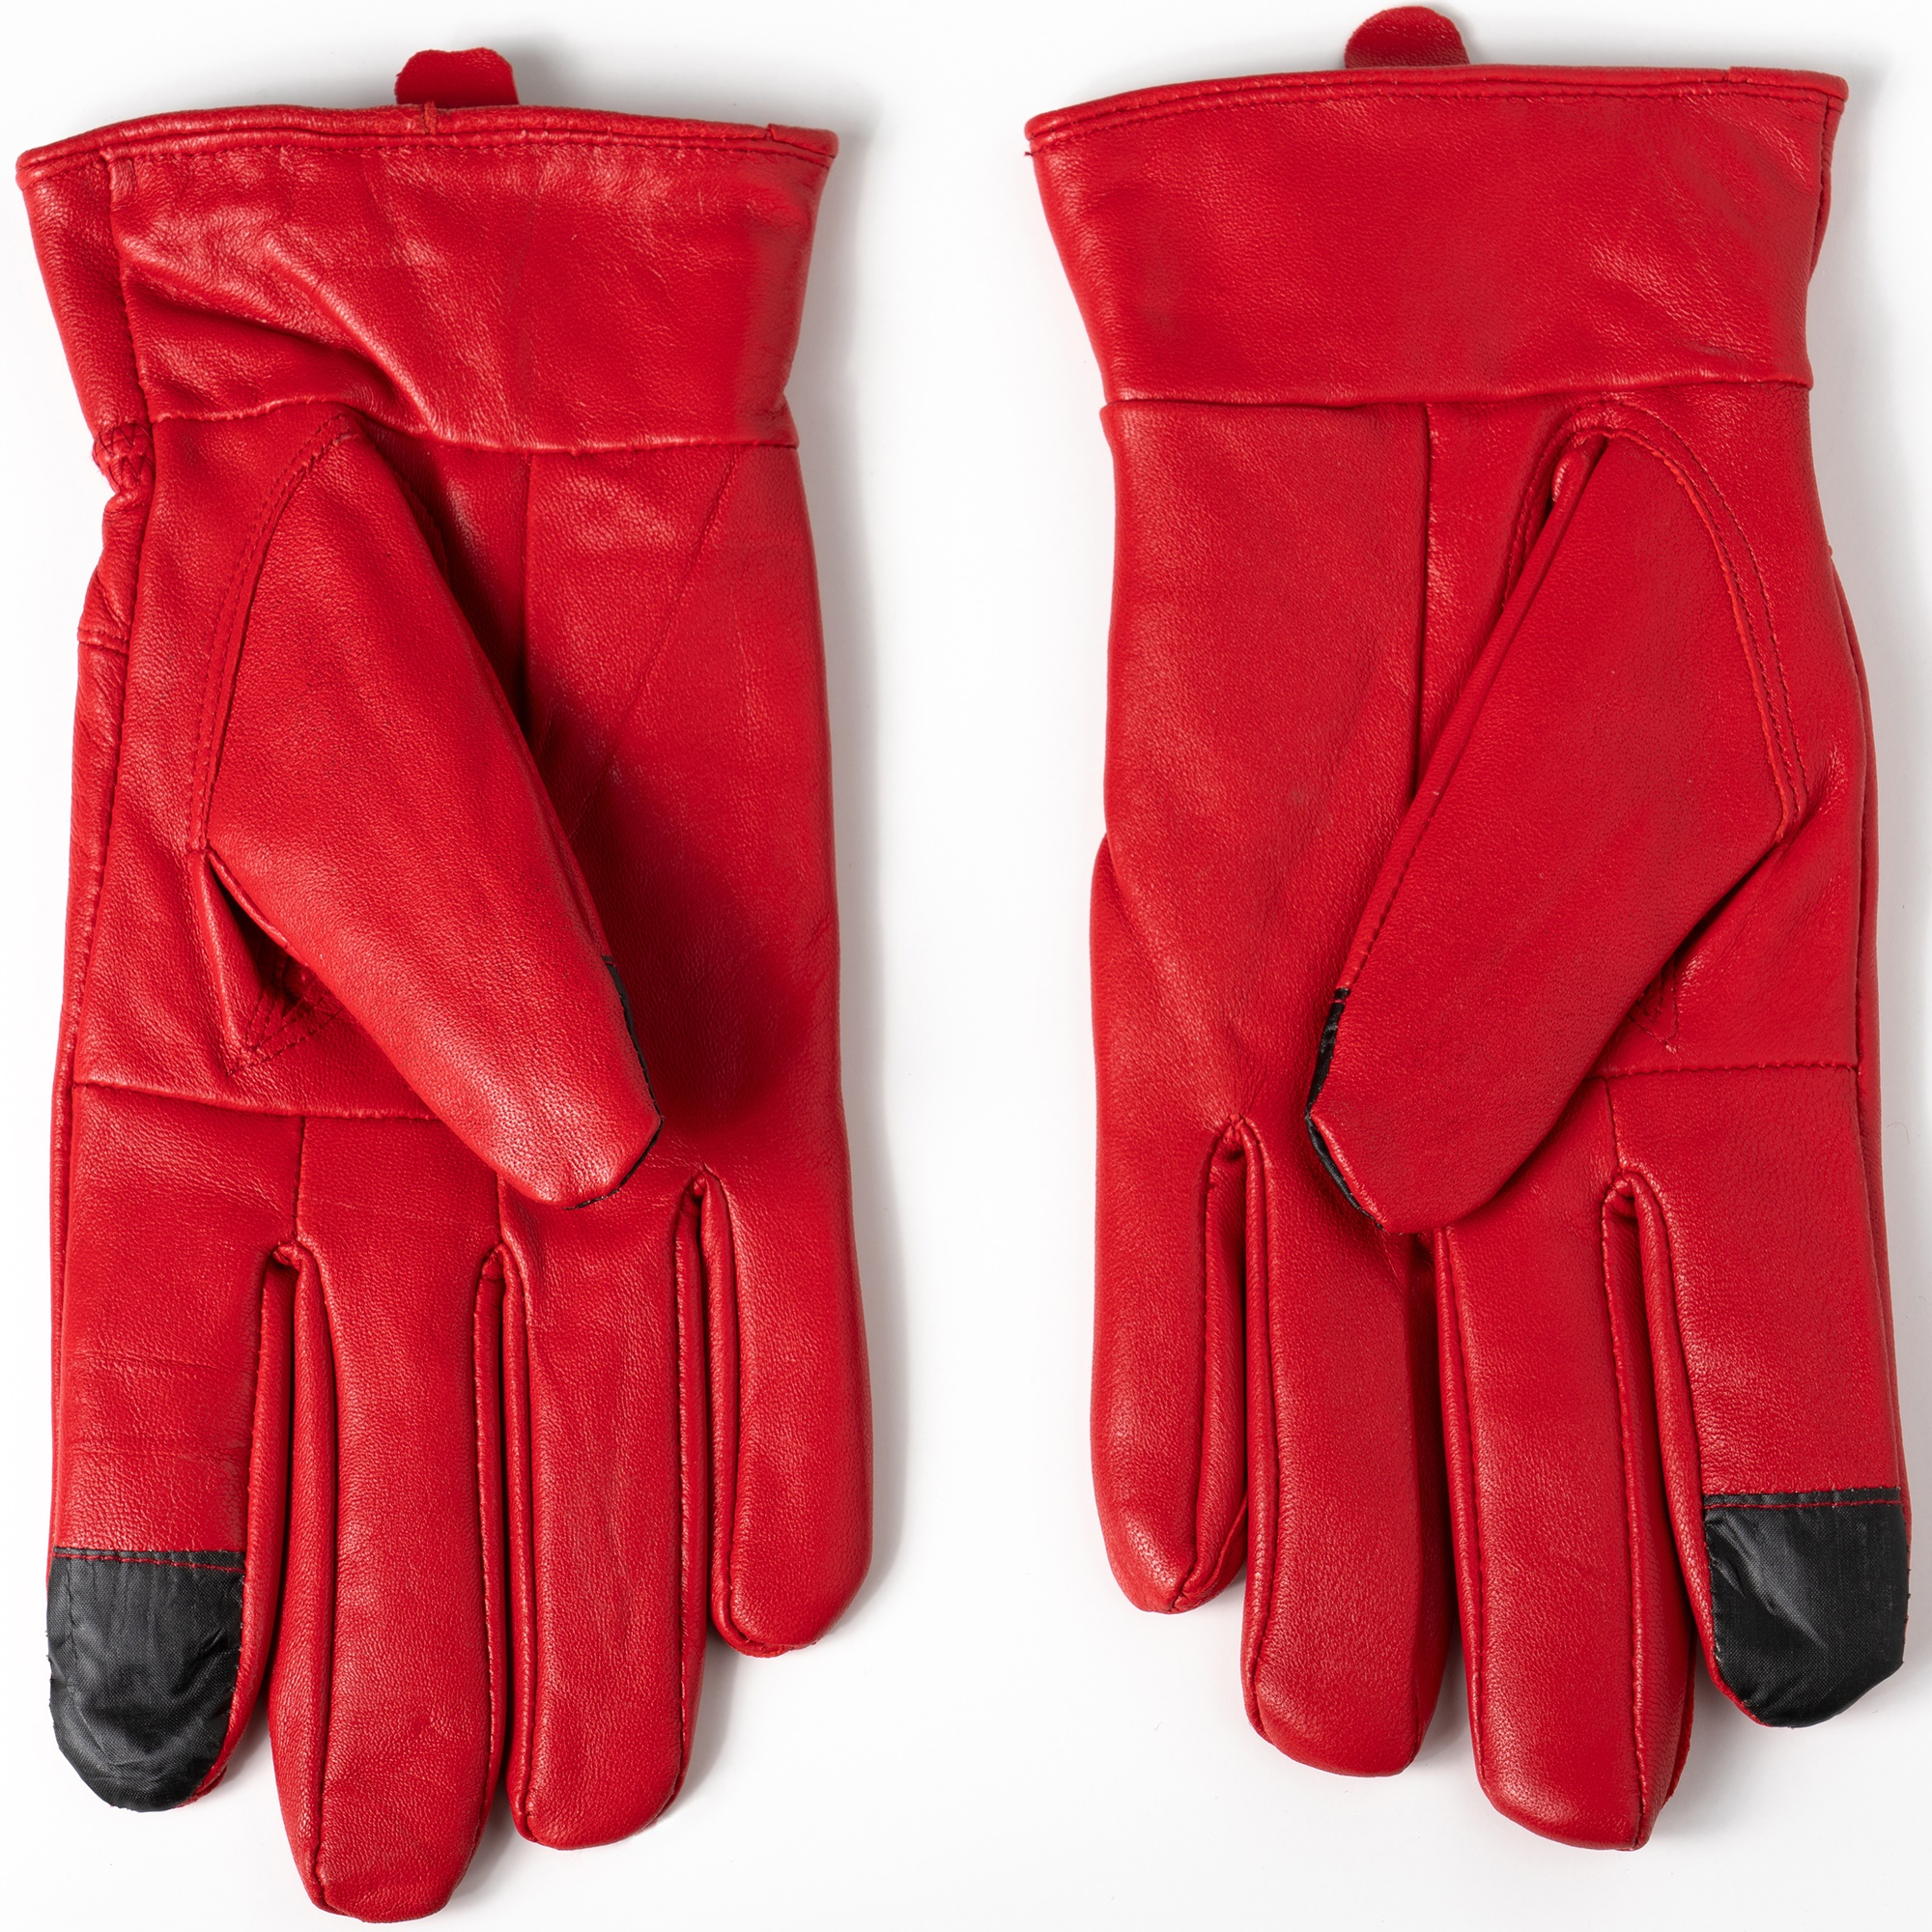 Alpine-Swiss-Womens-Touch-Screen-Gloves-Leather-Phone-Texting-Glove-Thermal-Warm thumbnail 34